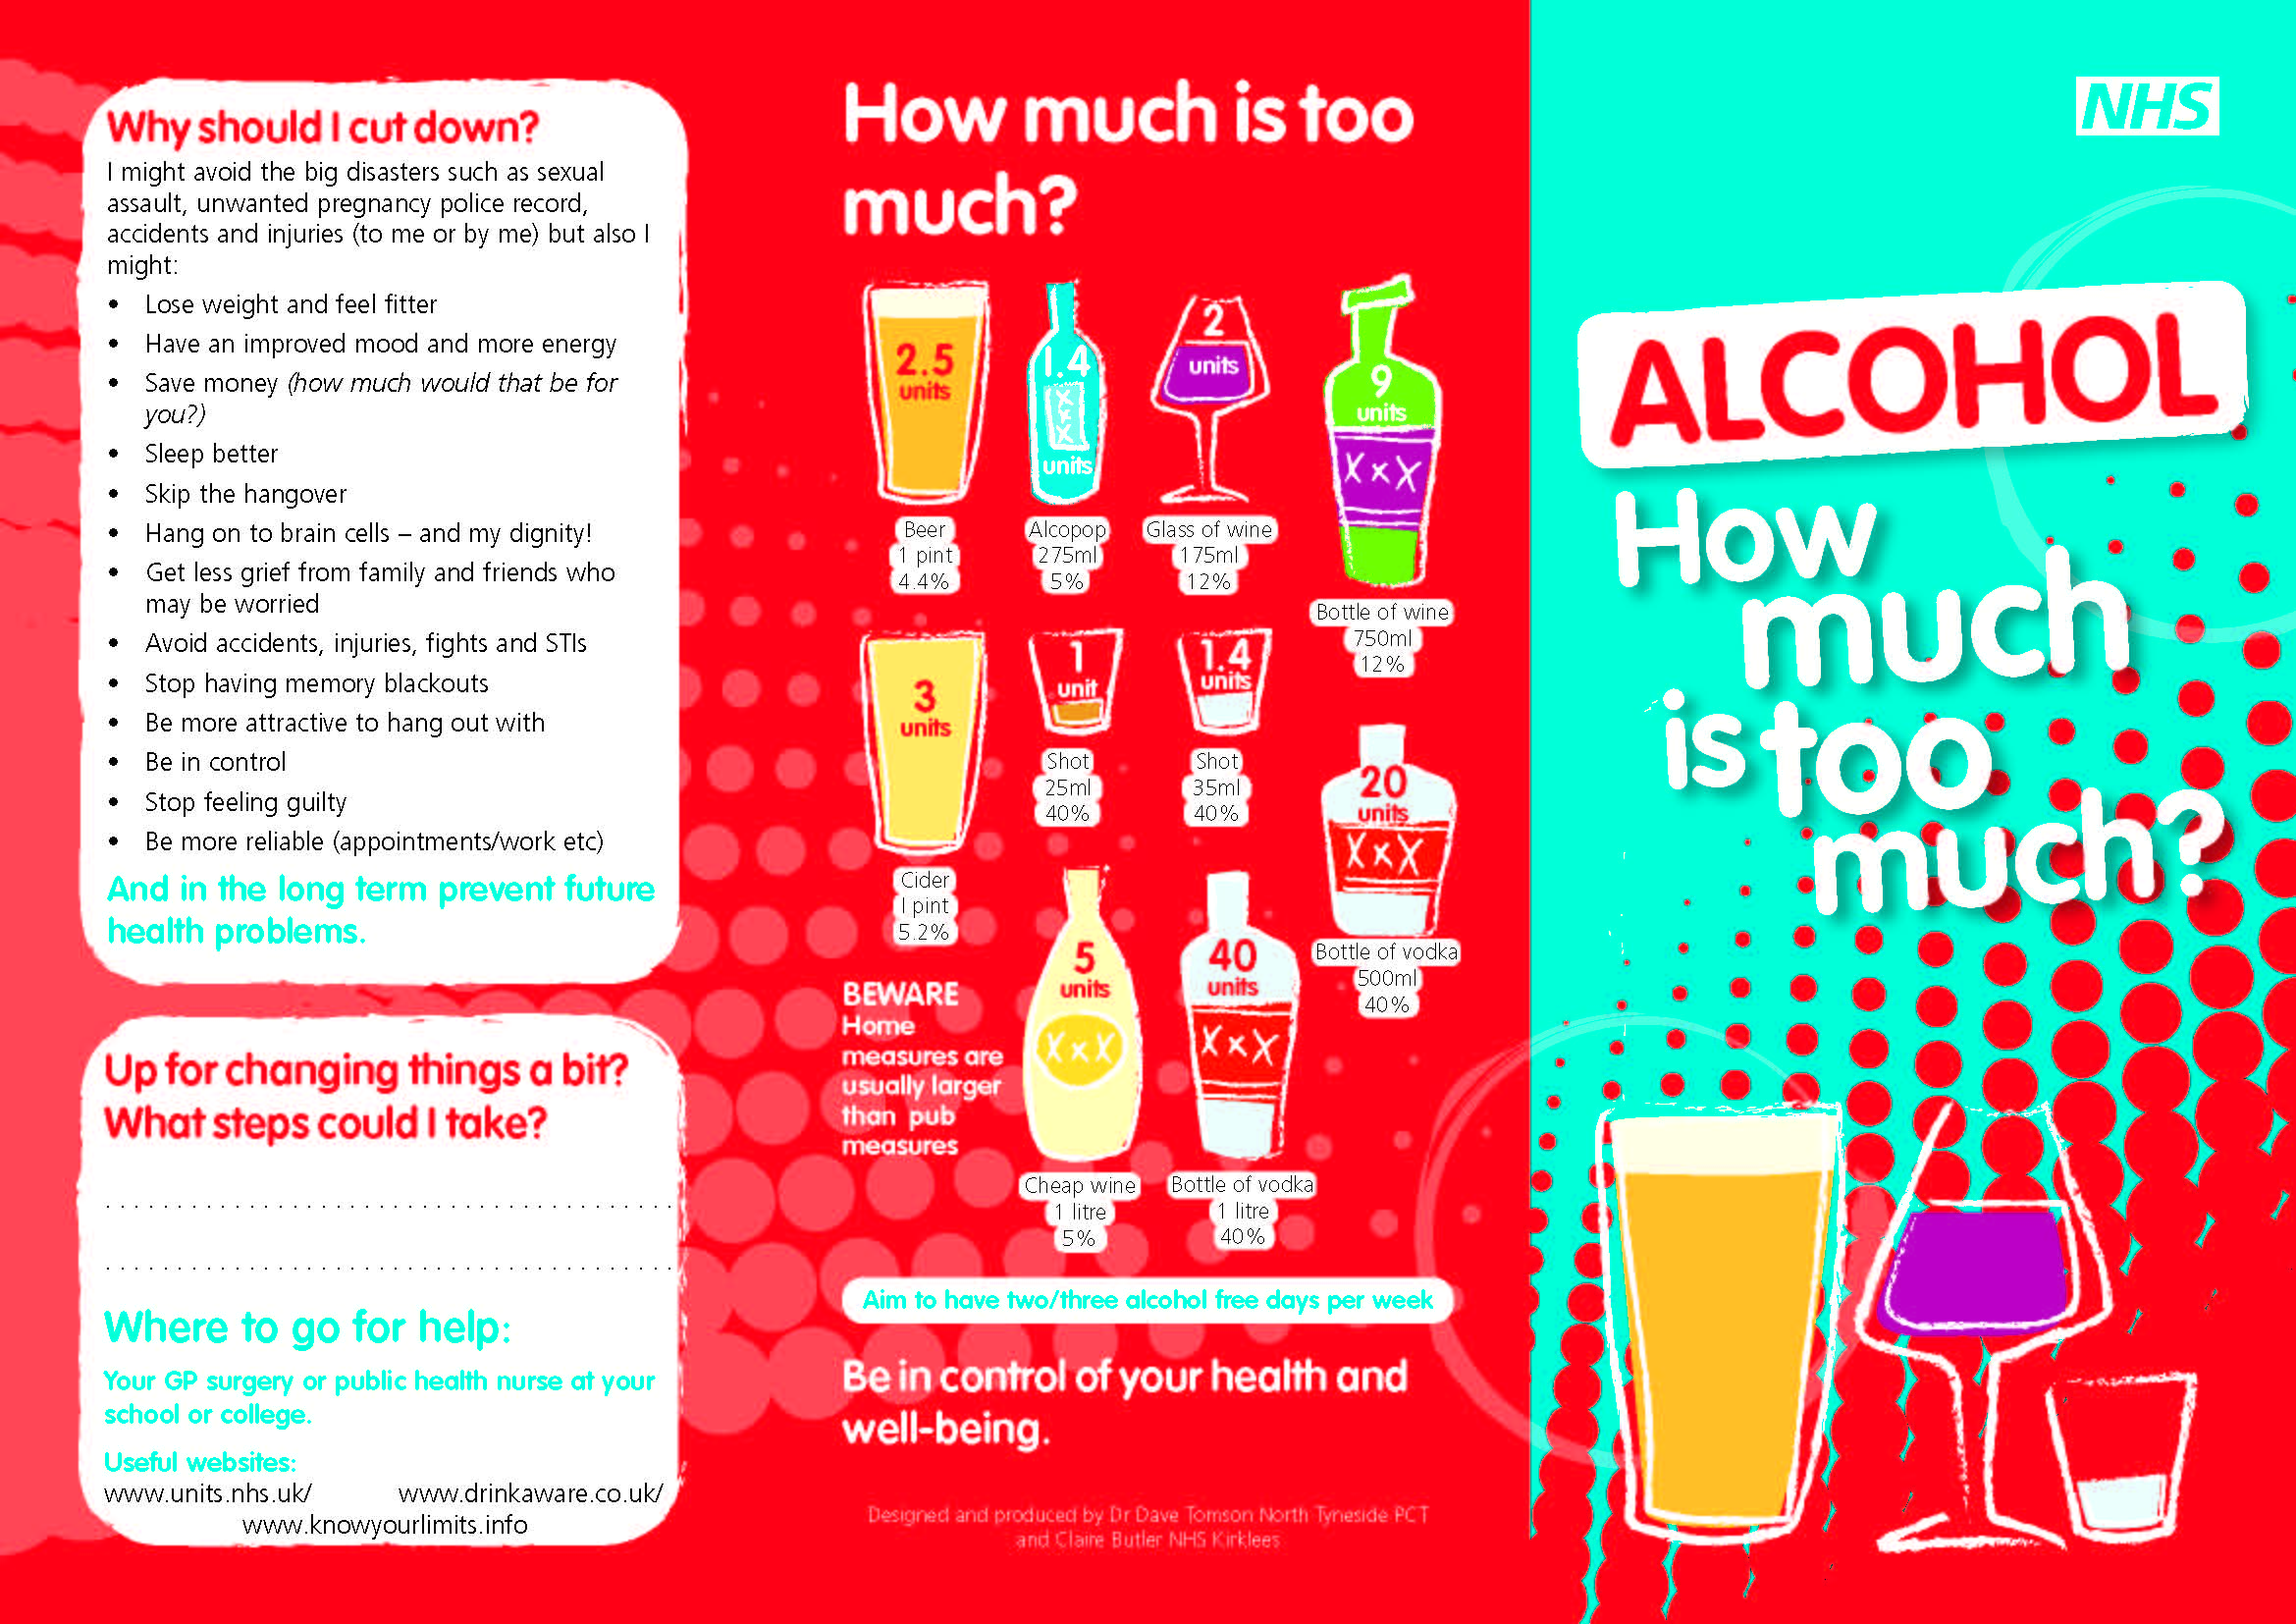 Alcohol-How-Much-is-Too-Much Page 1